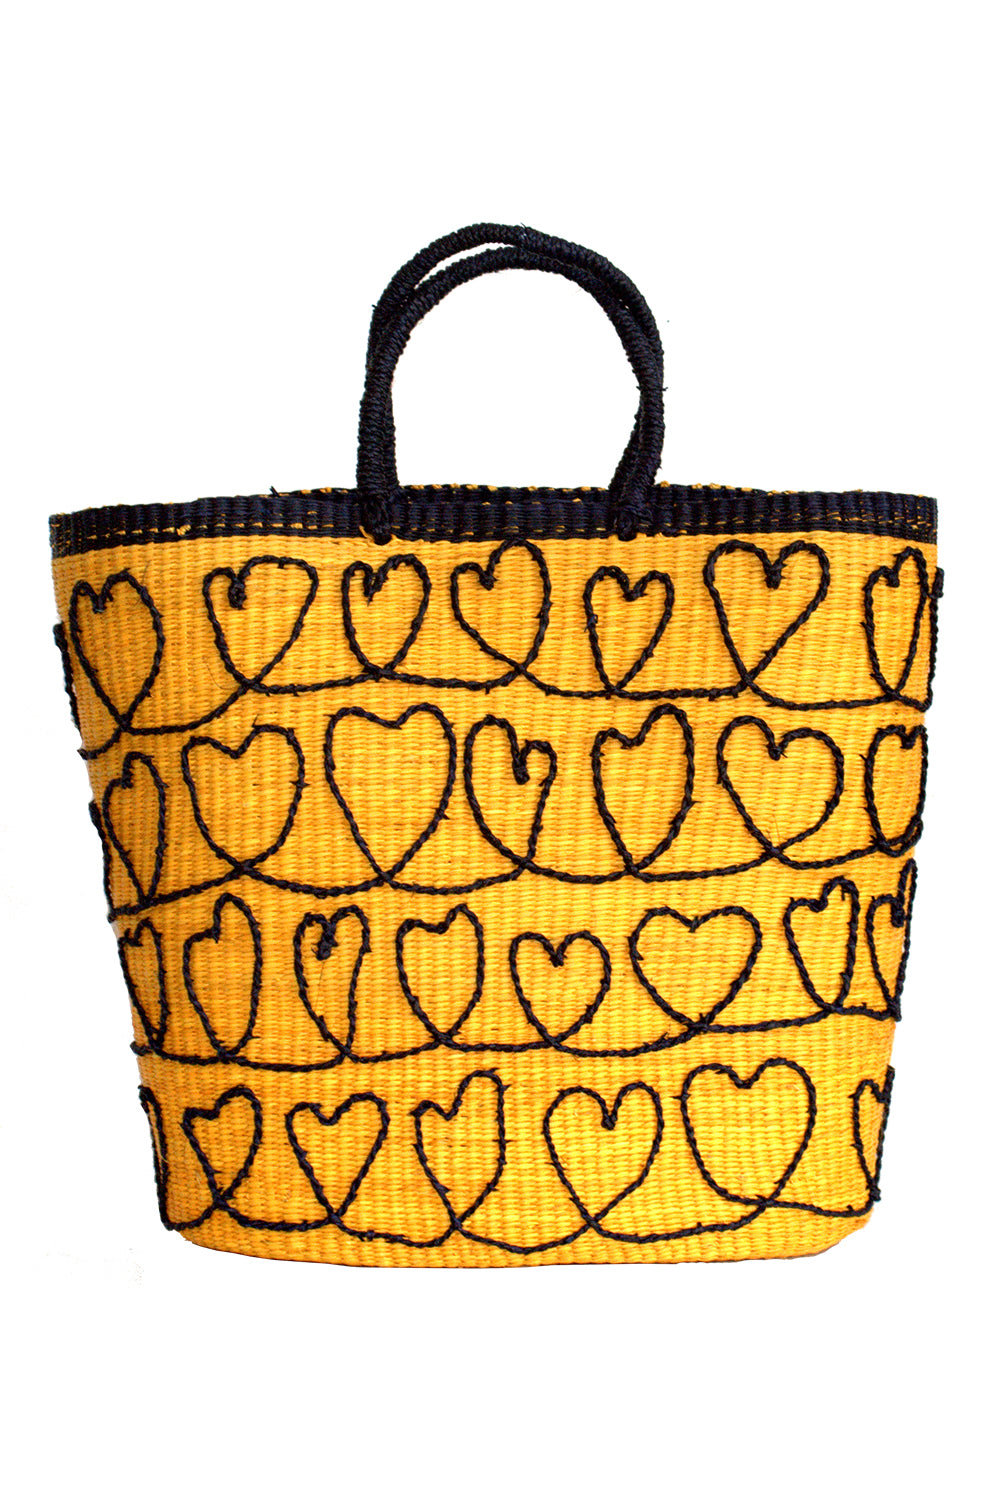 Corazones Tote Bag in Yellow & Black